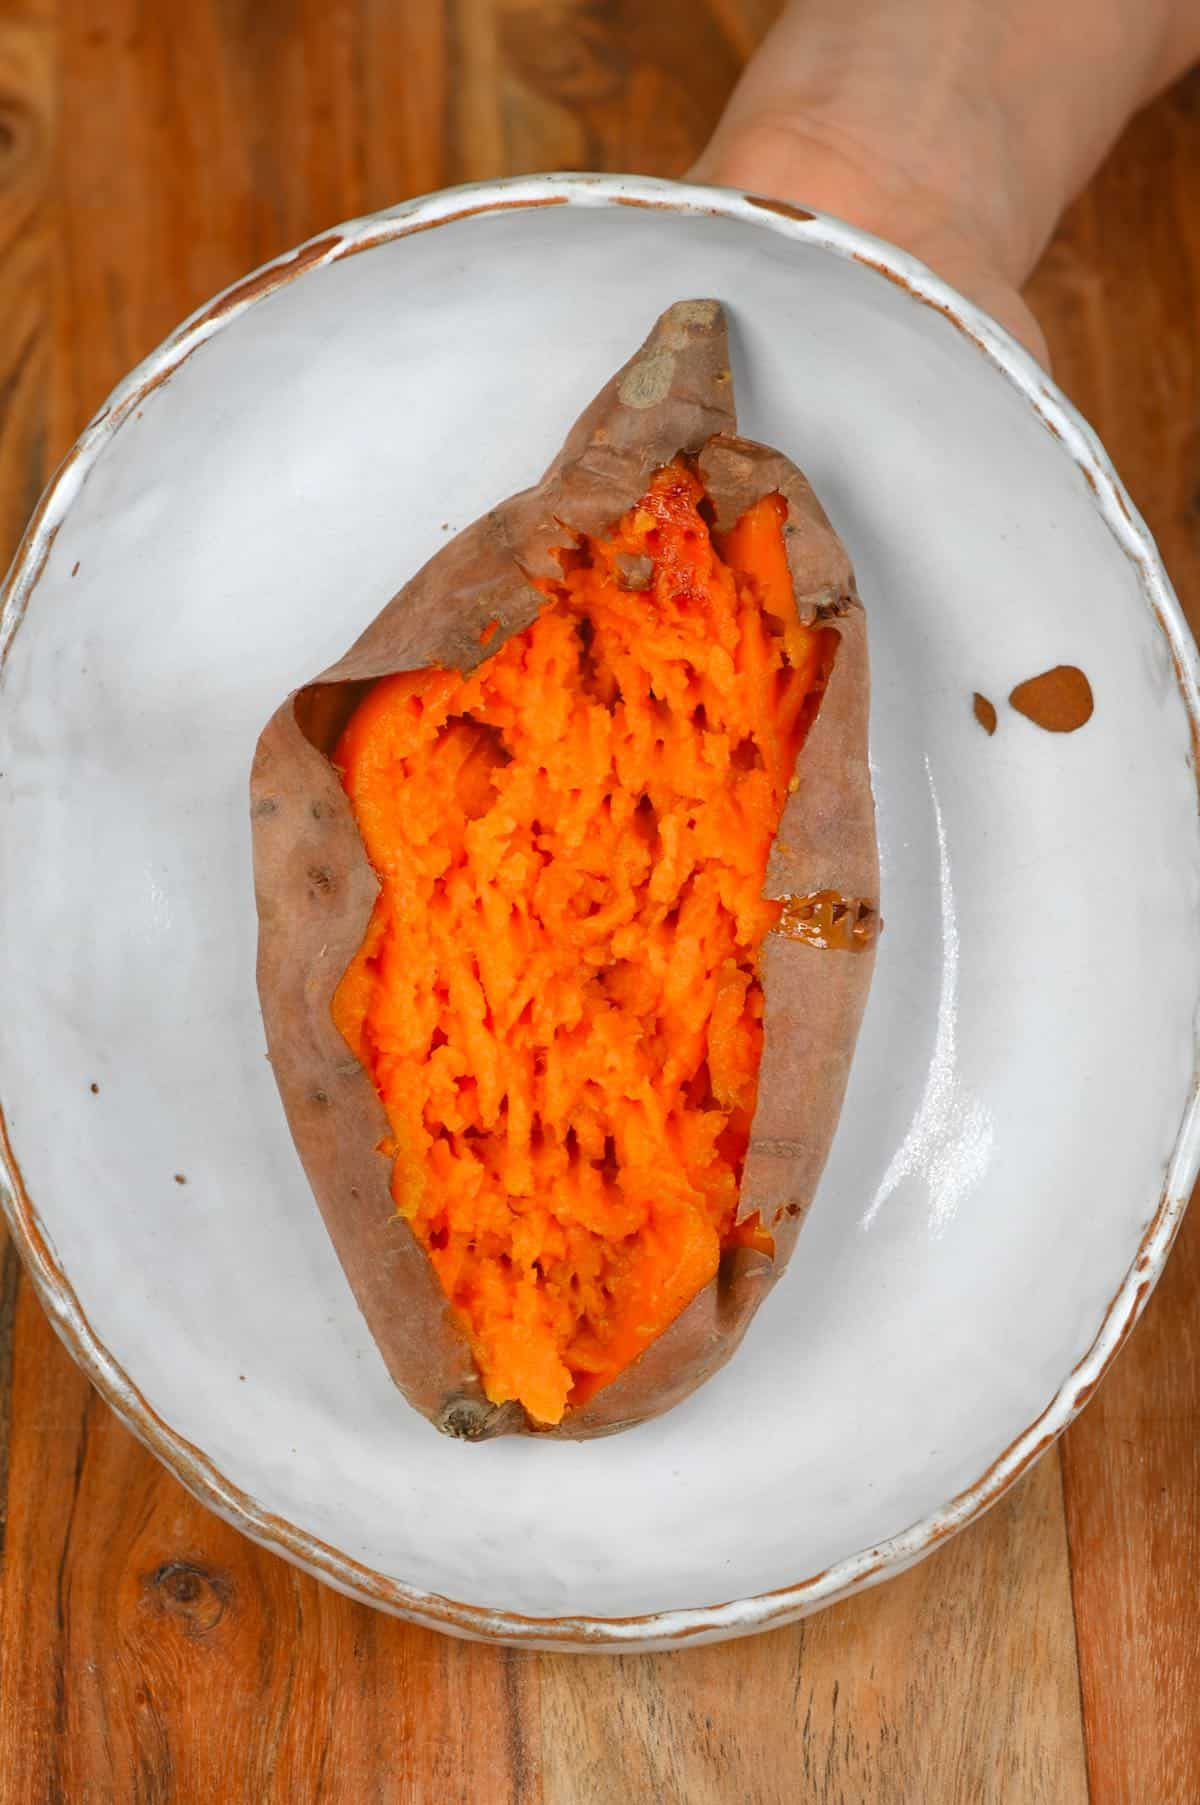 Baked sweet potatoes opened to show the inside